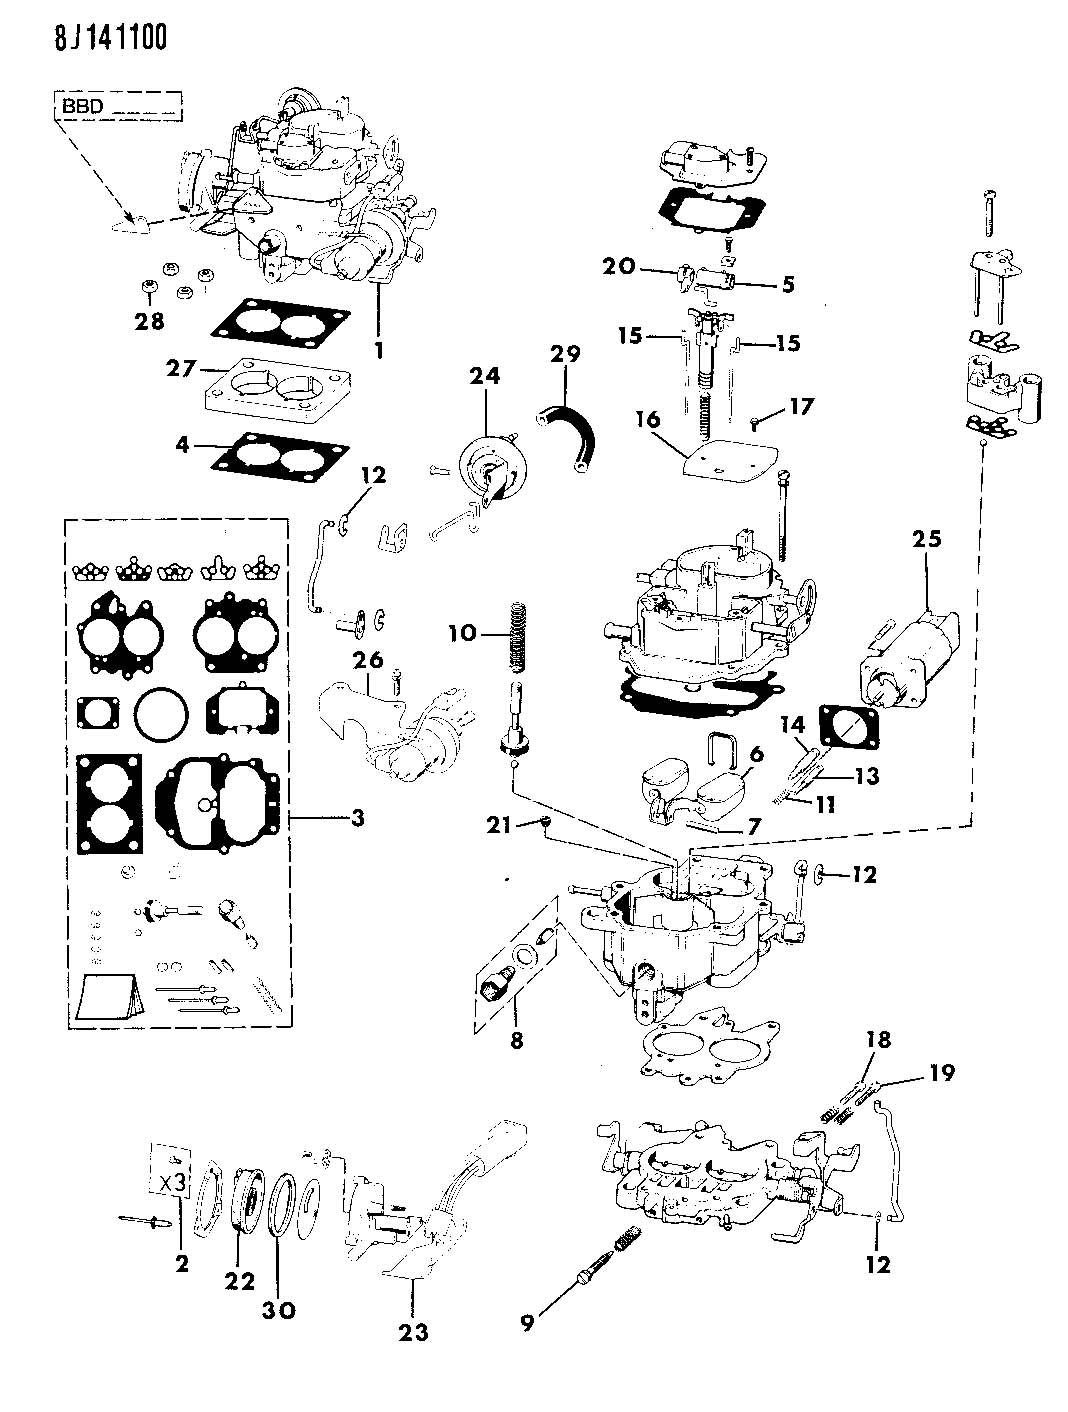 jeep grand cherokee tailgate parts diagram wiring diagrams 2007 Jeep Grand Cherokee Air Conditioning Diagram jeep emission parts schematic jeep free engine image for 2004 jeep grand cherokee parts 2004 grand cherokee parts diagram